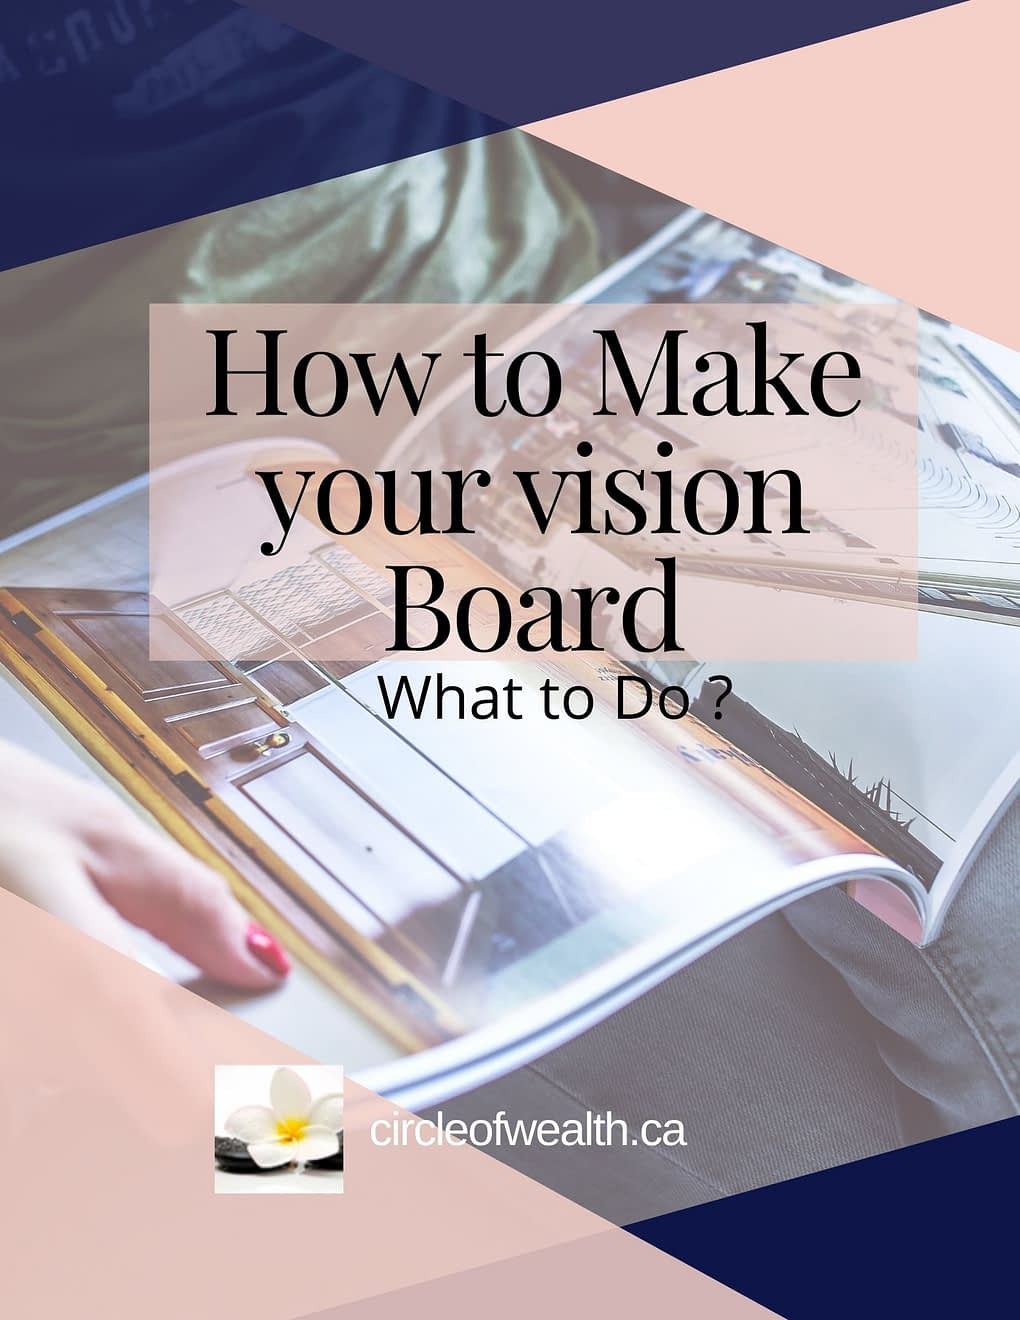 How to make your Vision Board in 6 Simple Steps